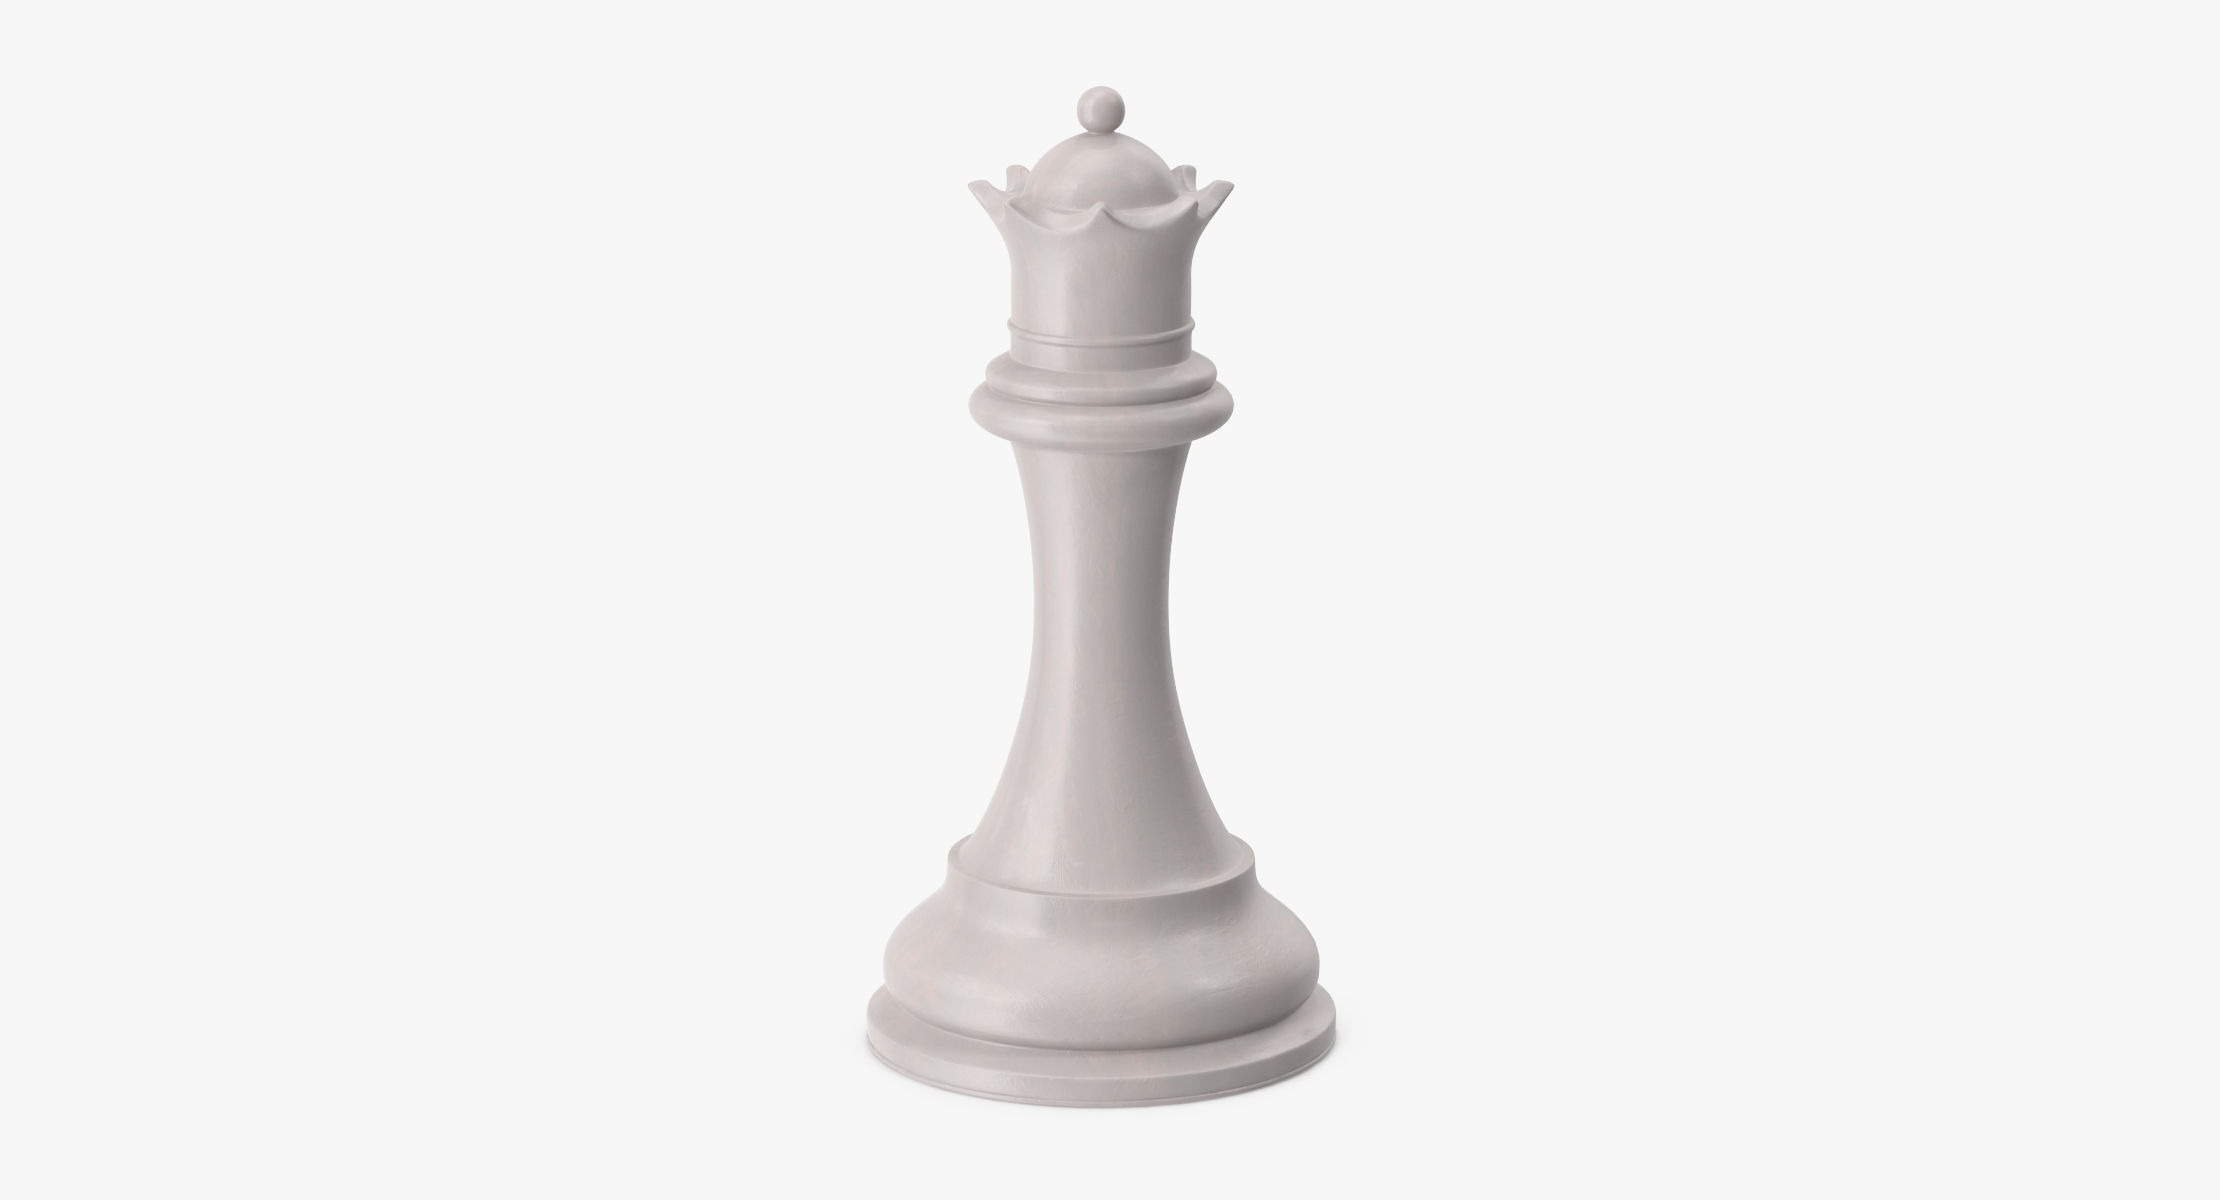 Chess Pieces - Queen White - reel 1